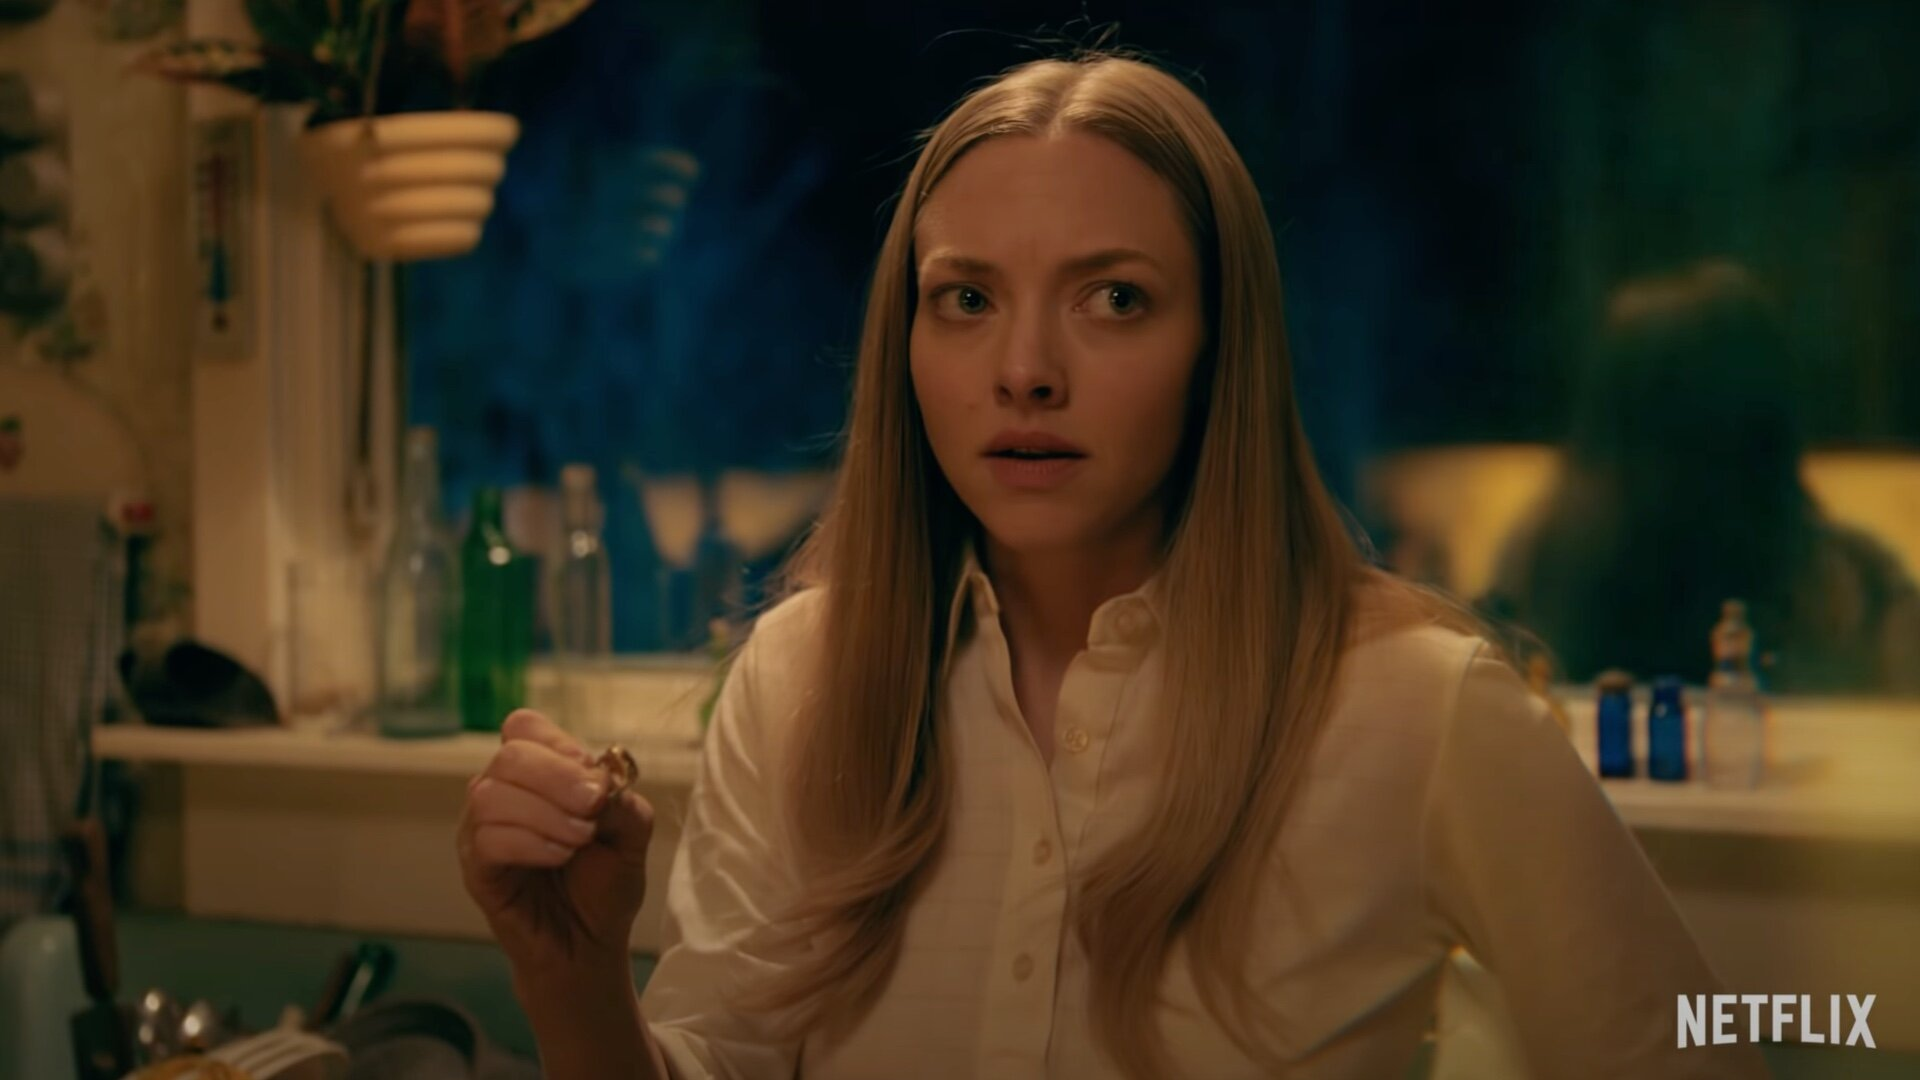 Seyfried's Catherine finds a ring